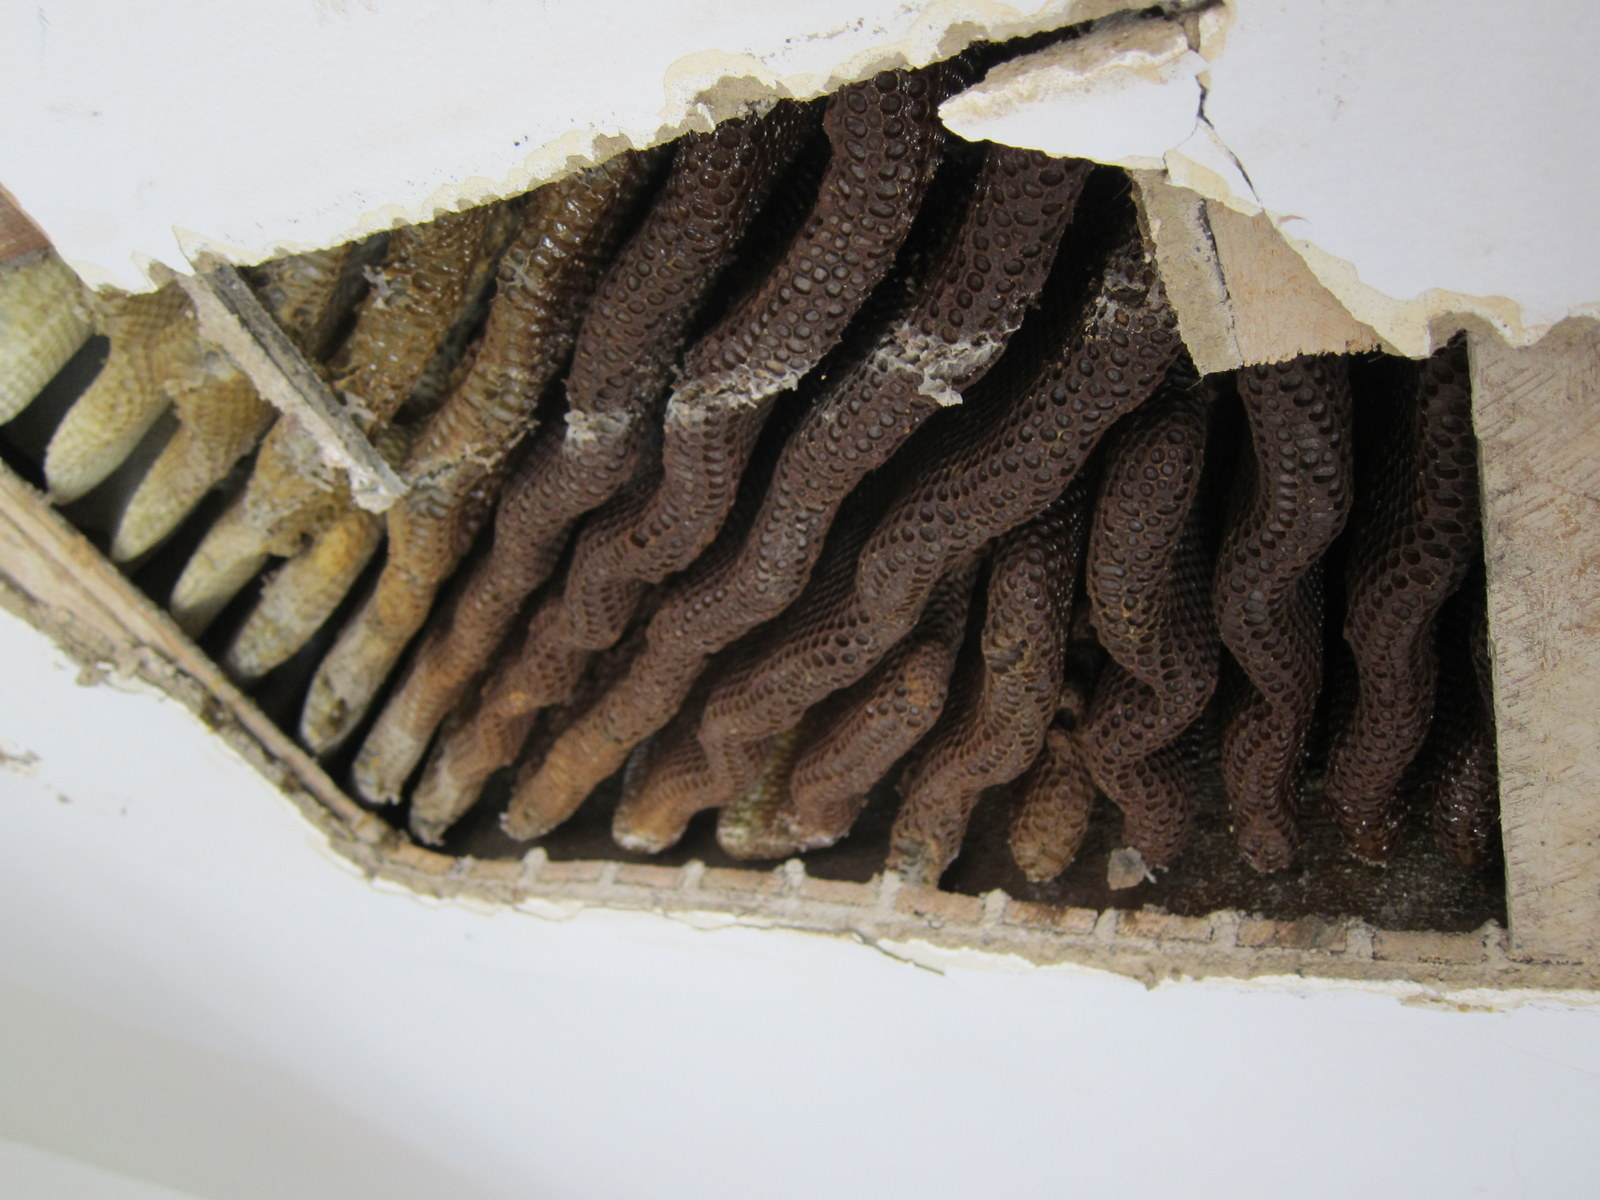 bees in ceiling for